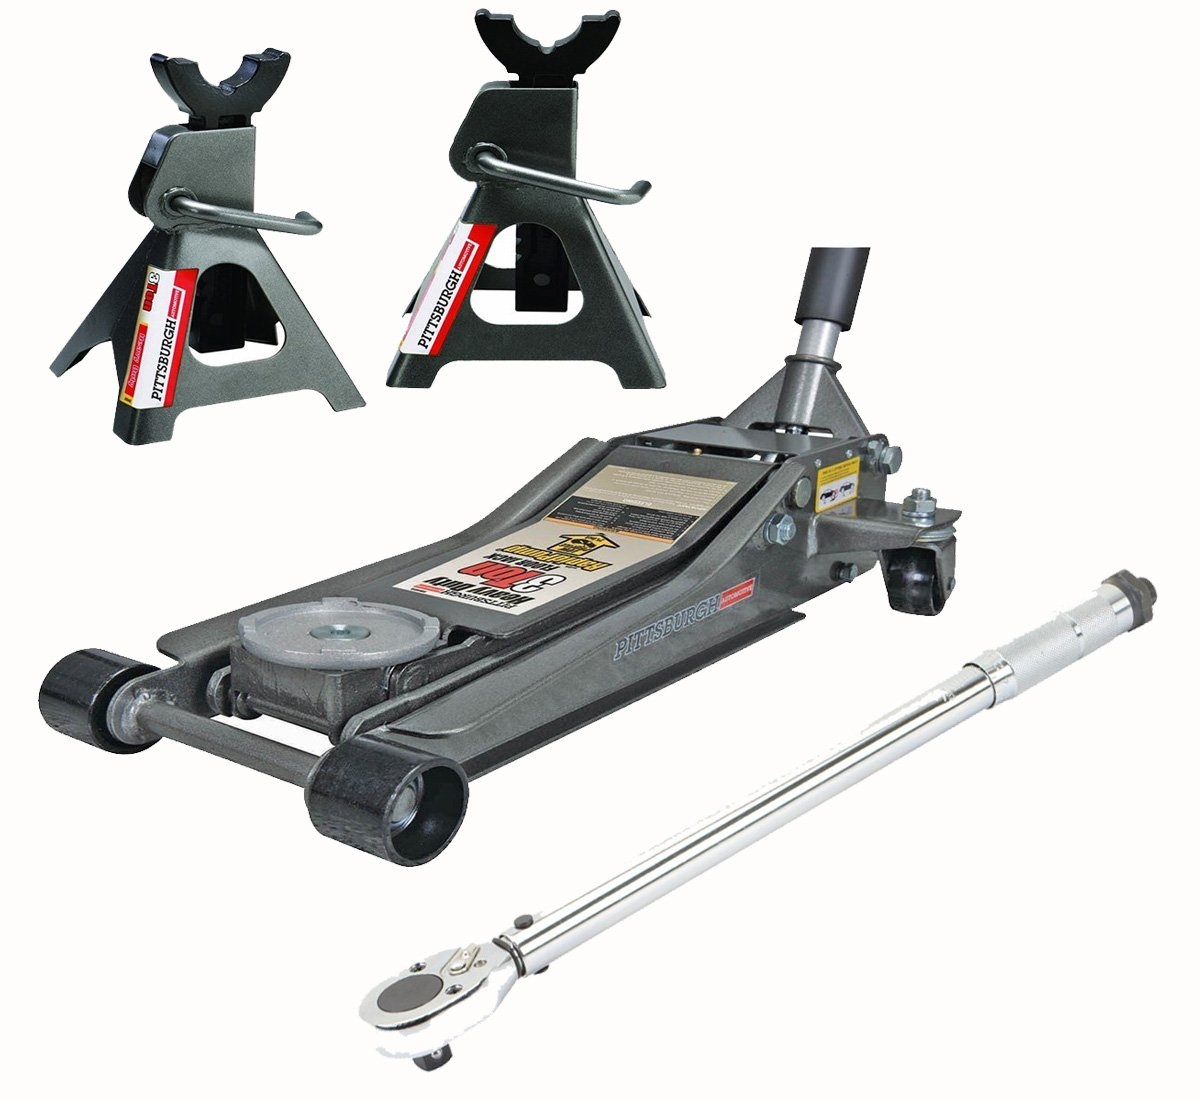 3 Ton Floor Jack Rapid Pump with Jack Stands and Torque Wrench Heavy Duty Set by Pittsburgh